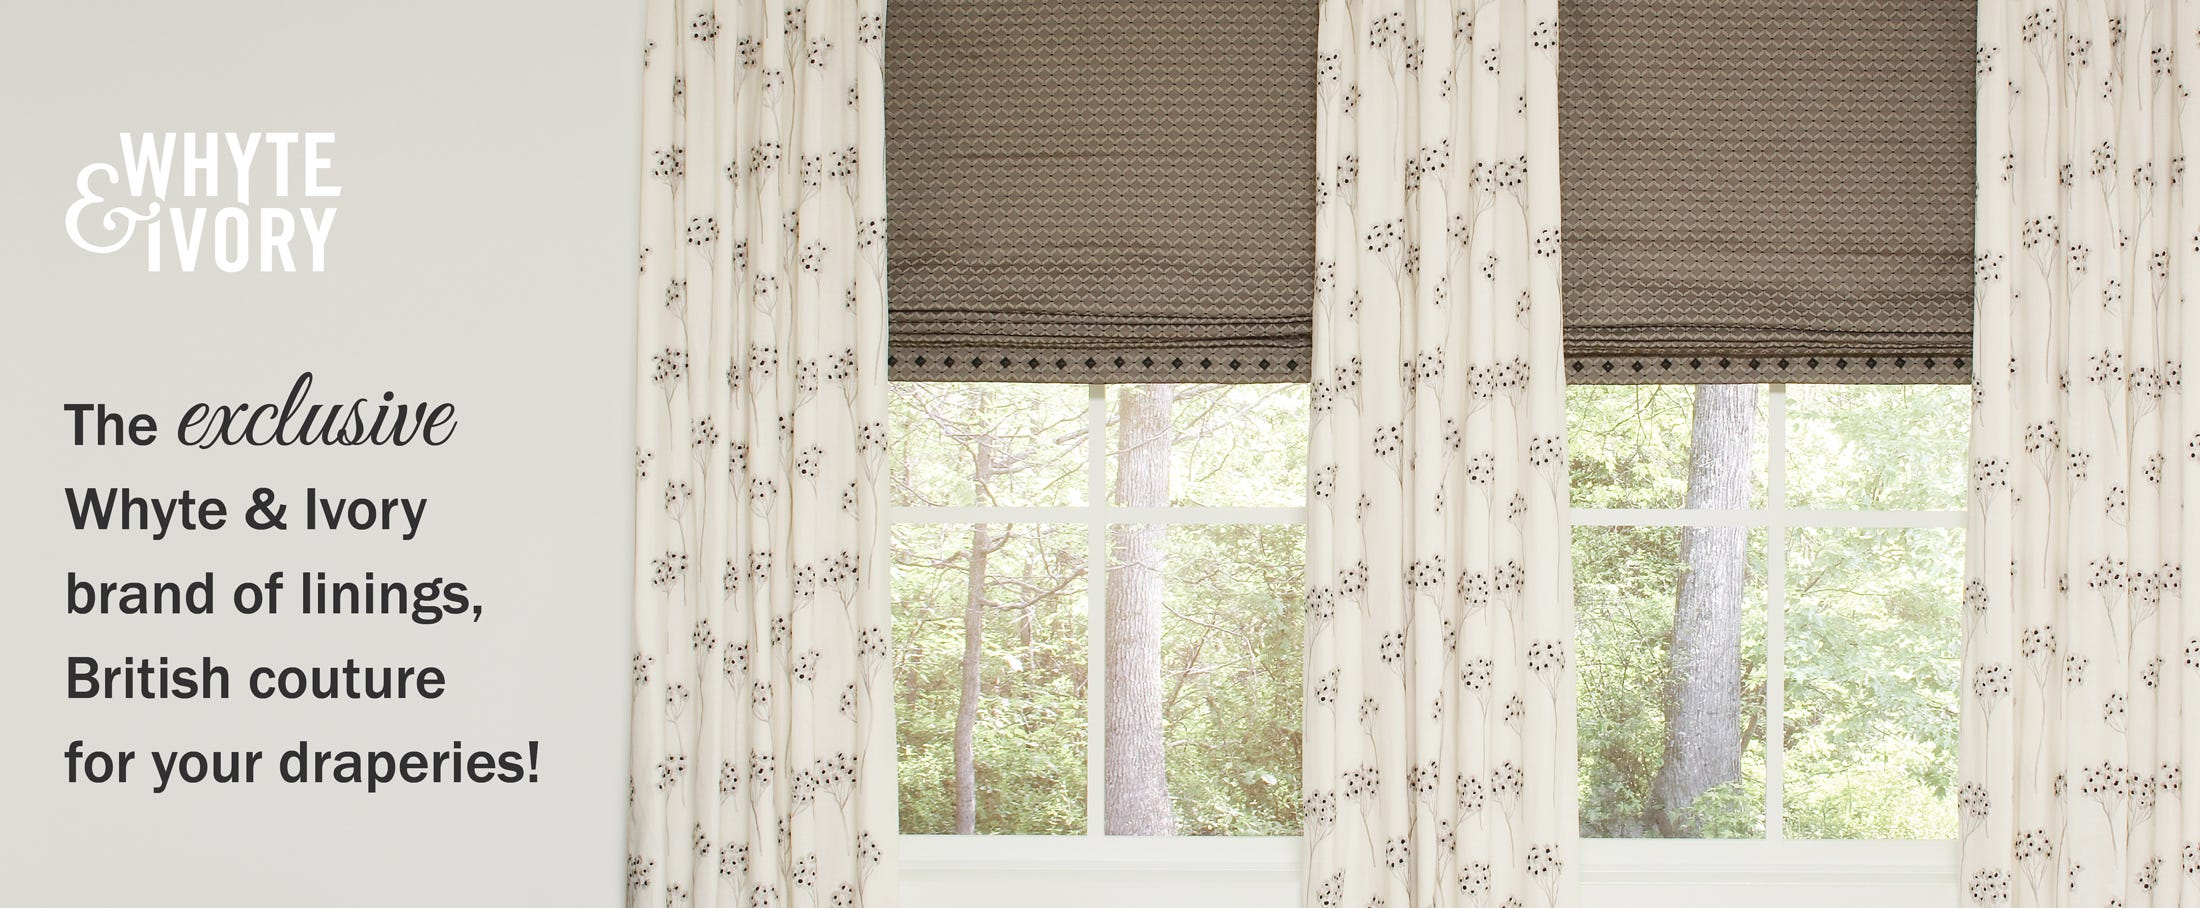 Whyte & Ivory Linings and Interlinings